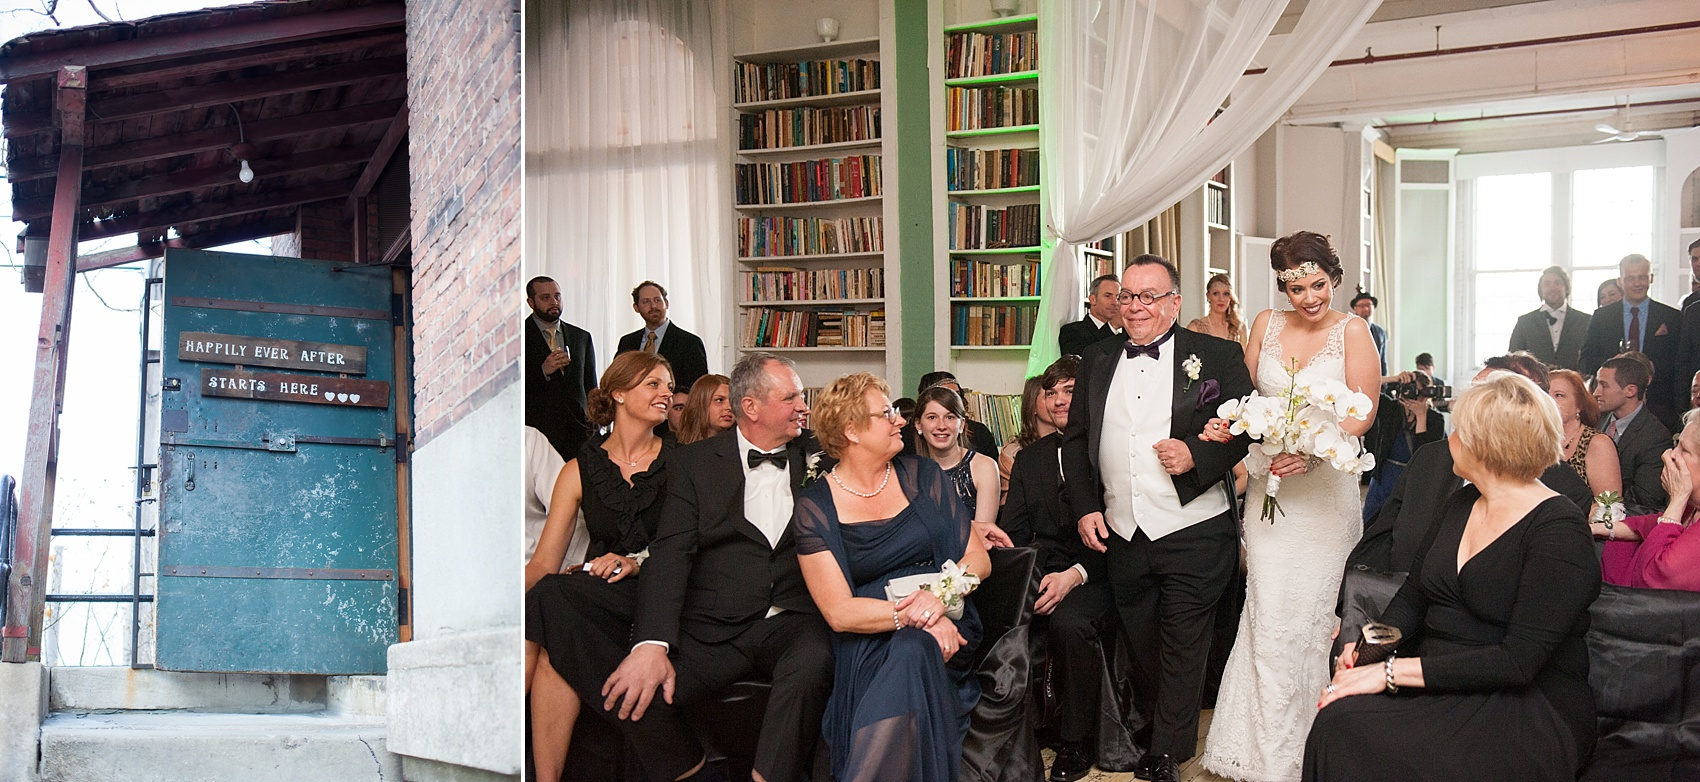 Ceremony at the Metropolitan Building vintage 1920's wedding. Images by Mikkel Paige Photography.